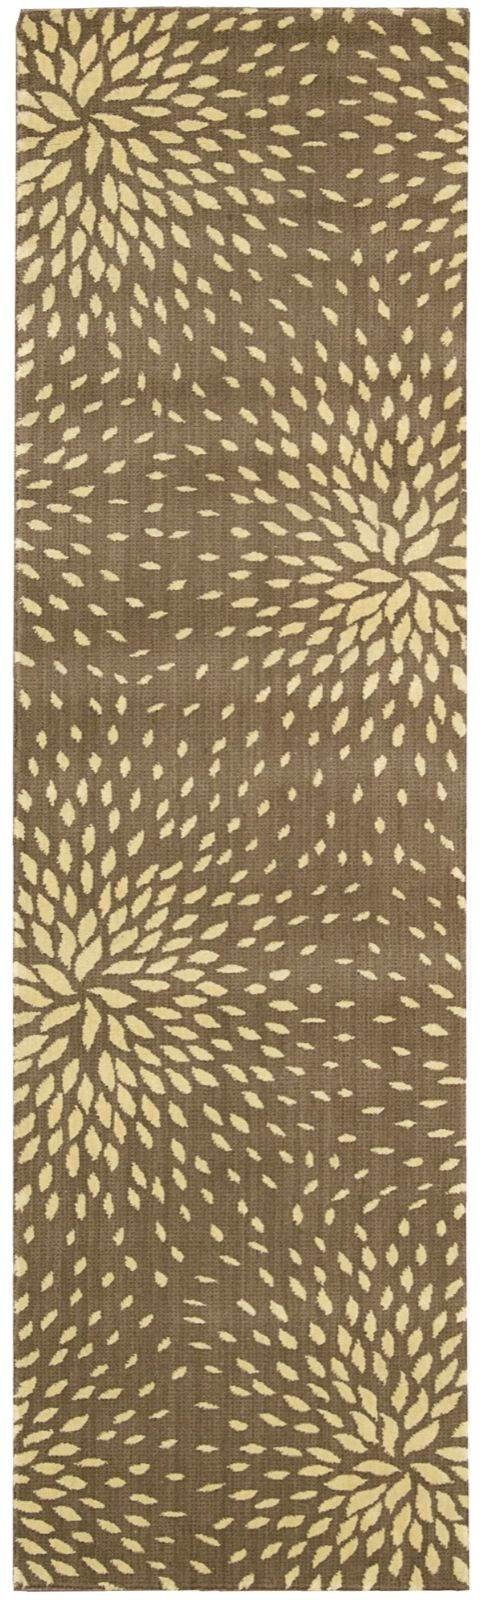 nourison capri transitional area rug collection